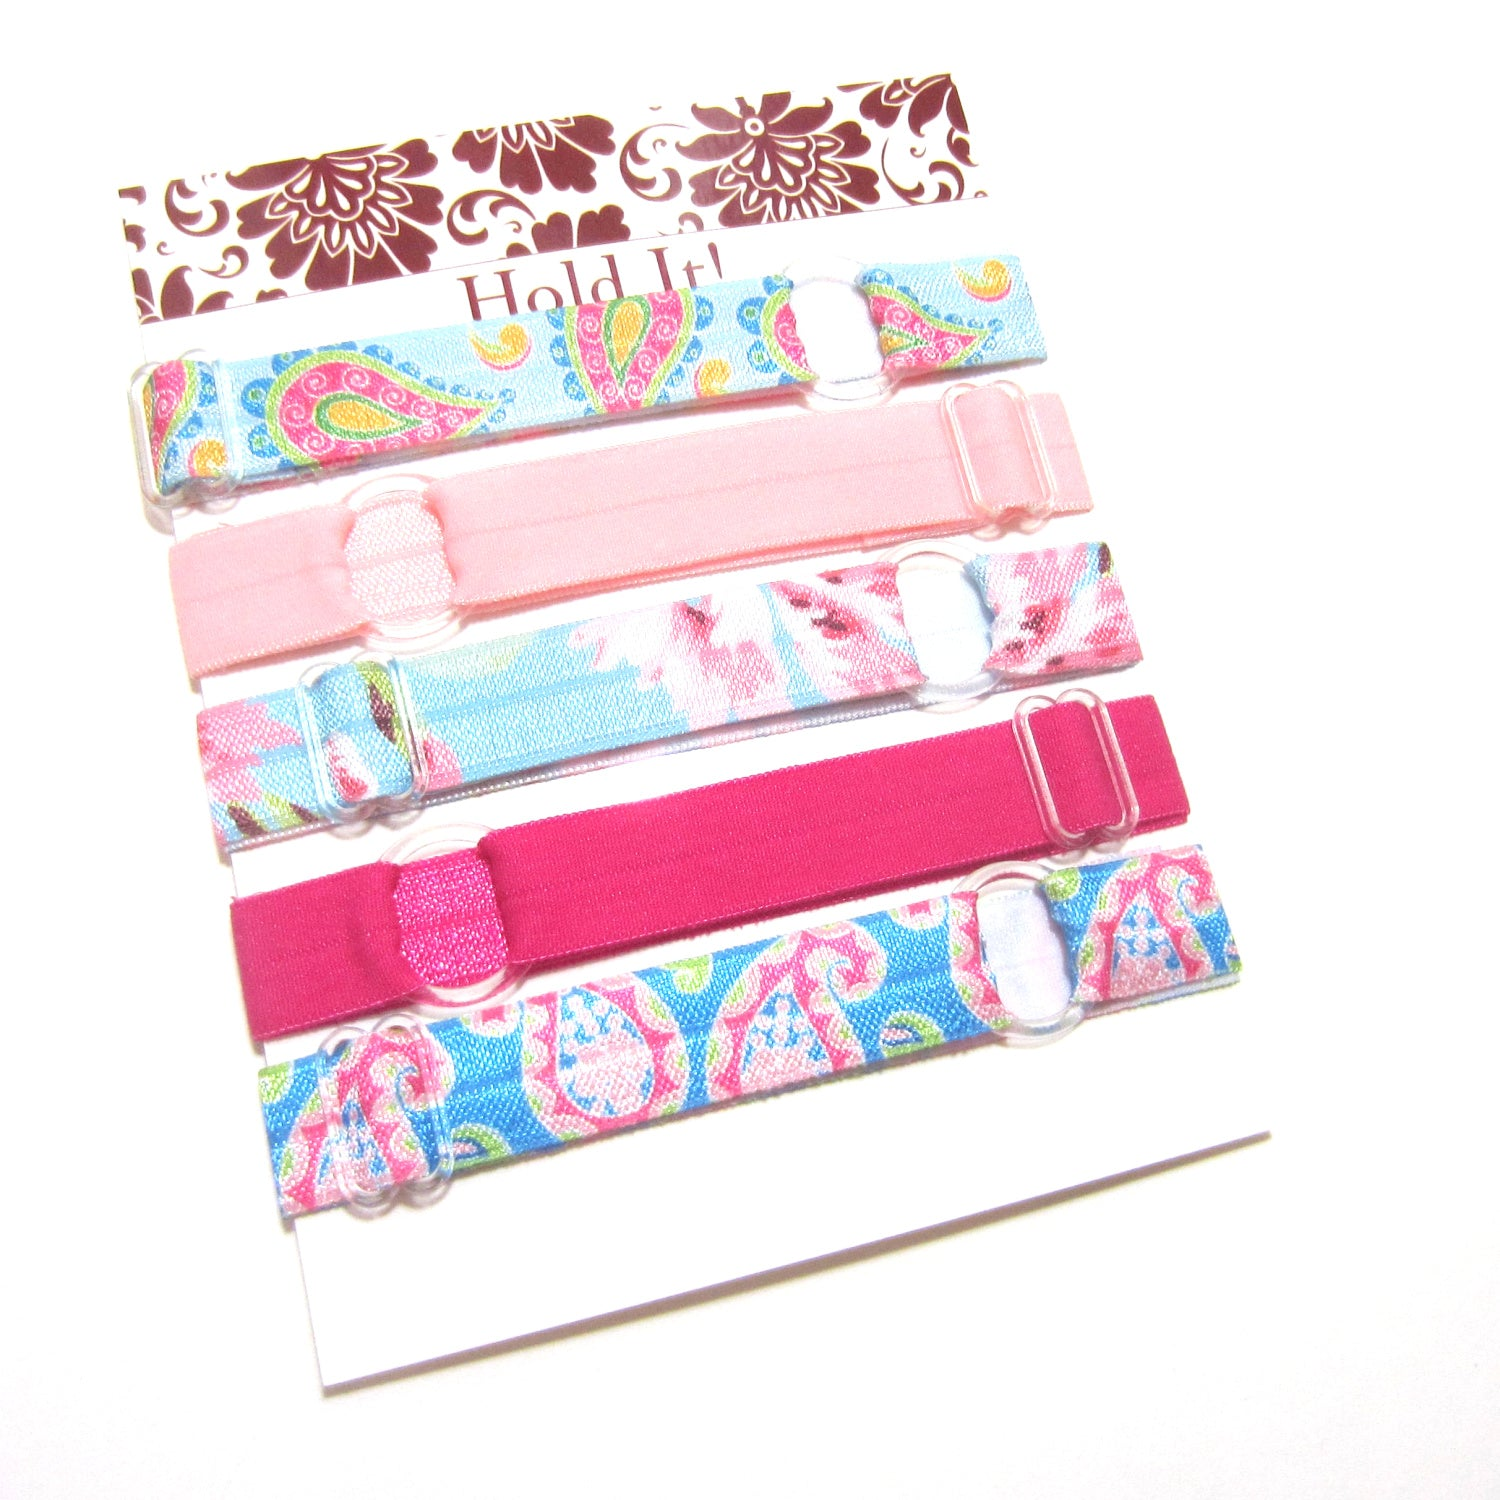 Set of 5 Adjustable Headbands - Blue & Pink Paisley Floral - Hold It!